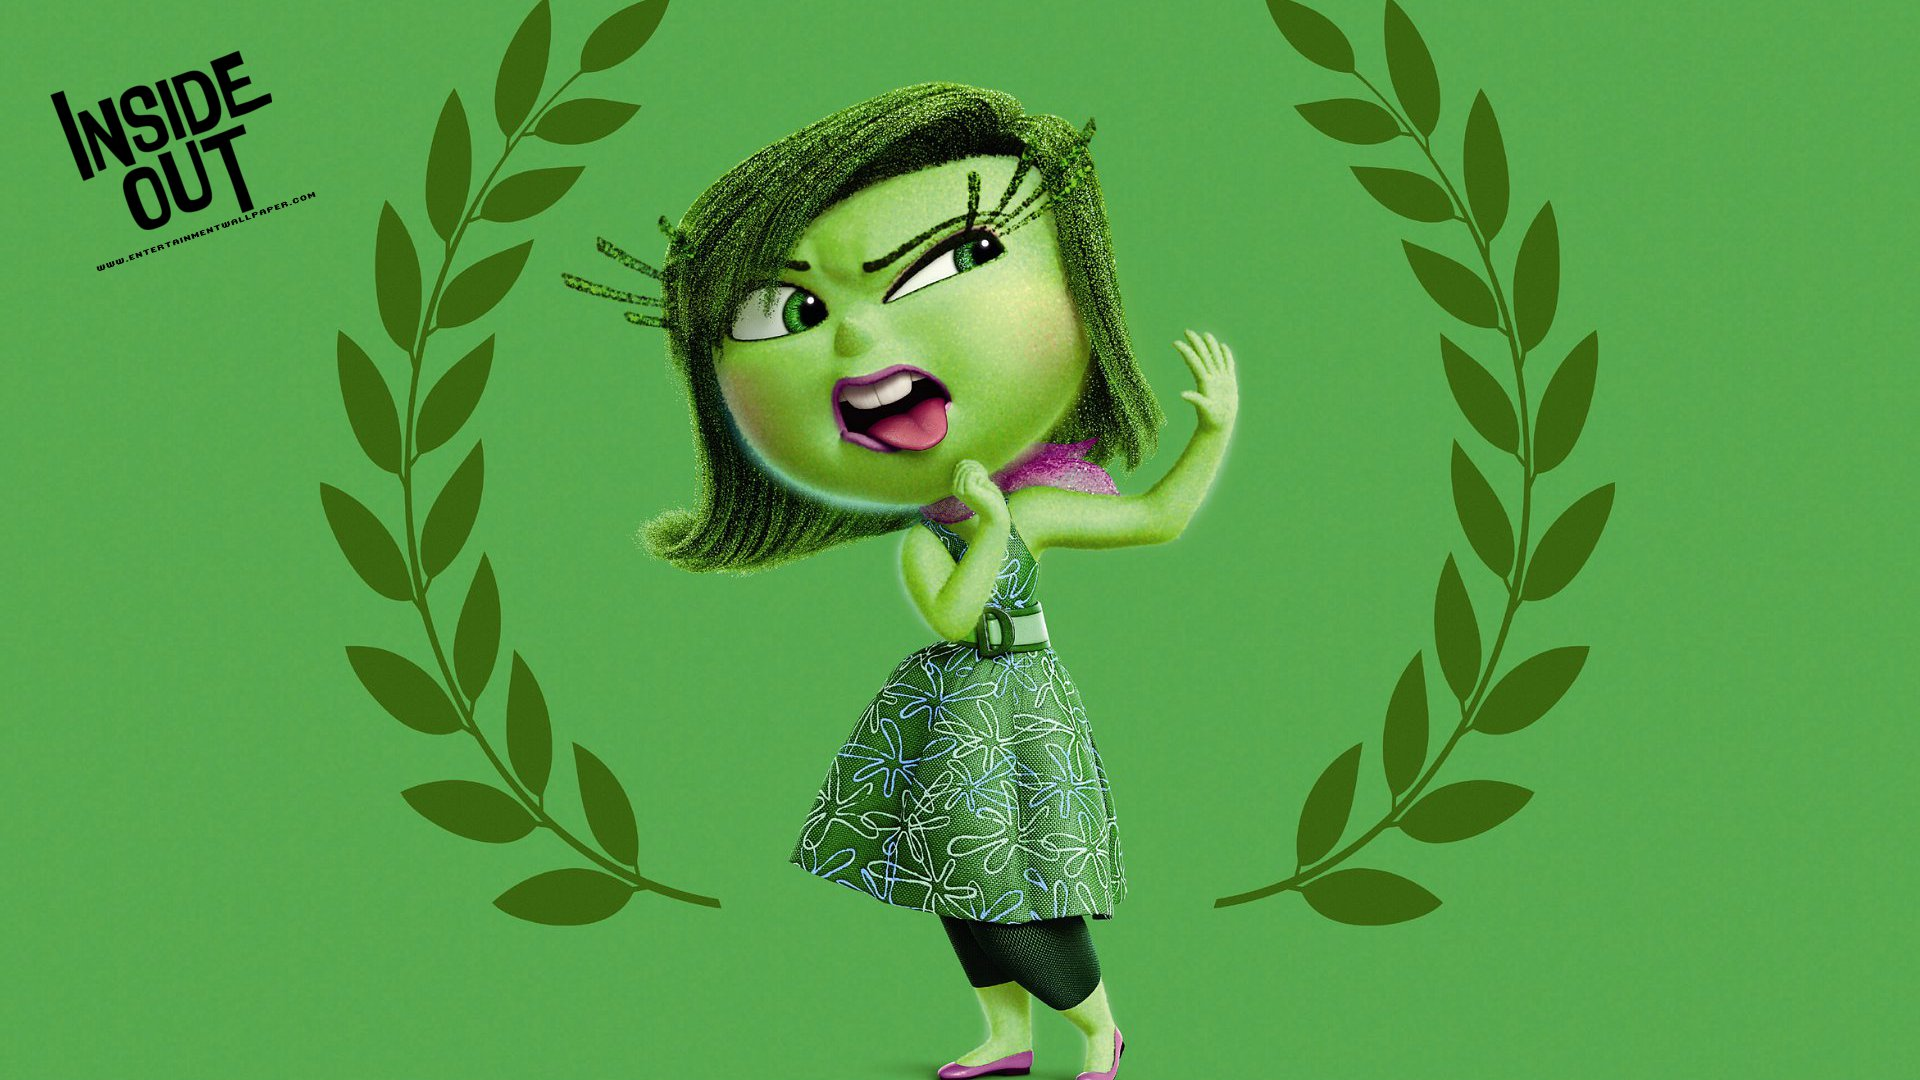 Disgust inside out images disgust wallpaper hd wallpaper and